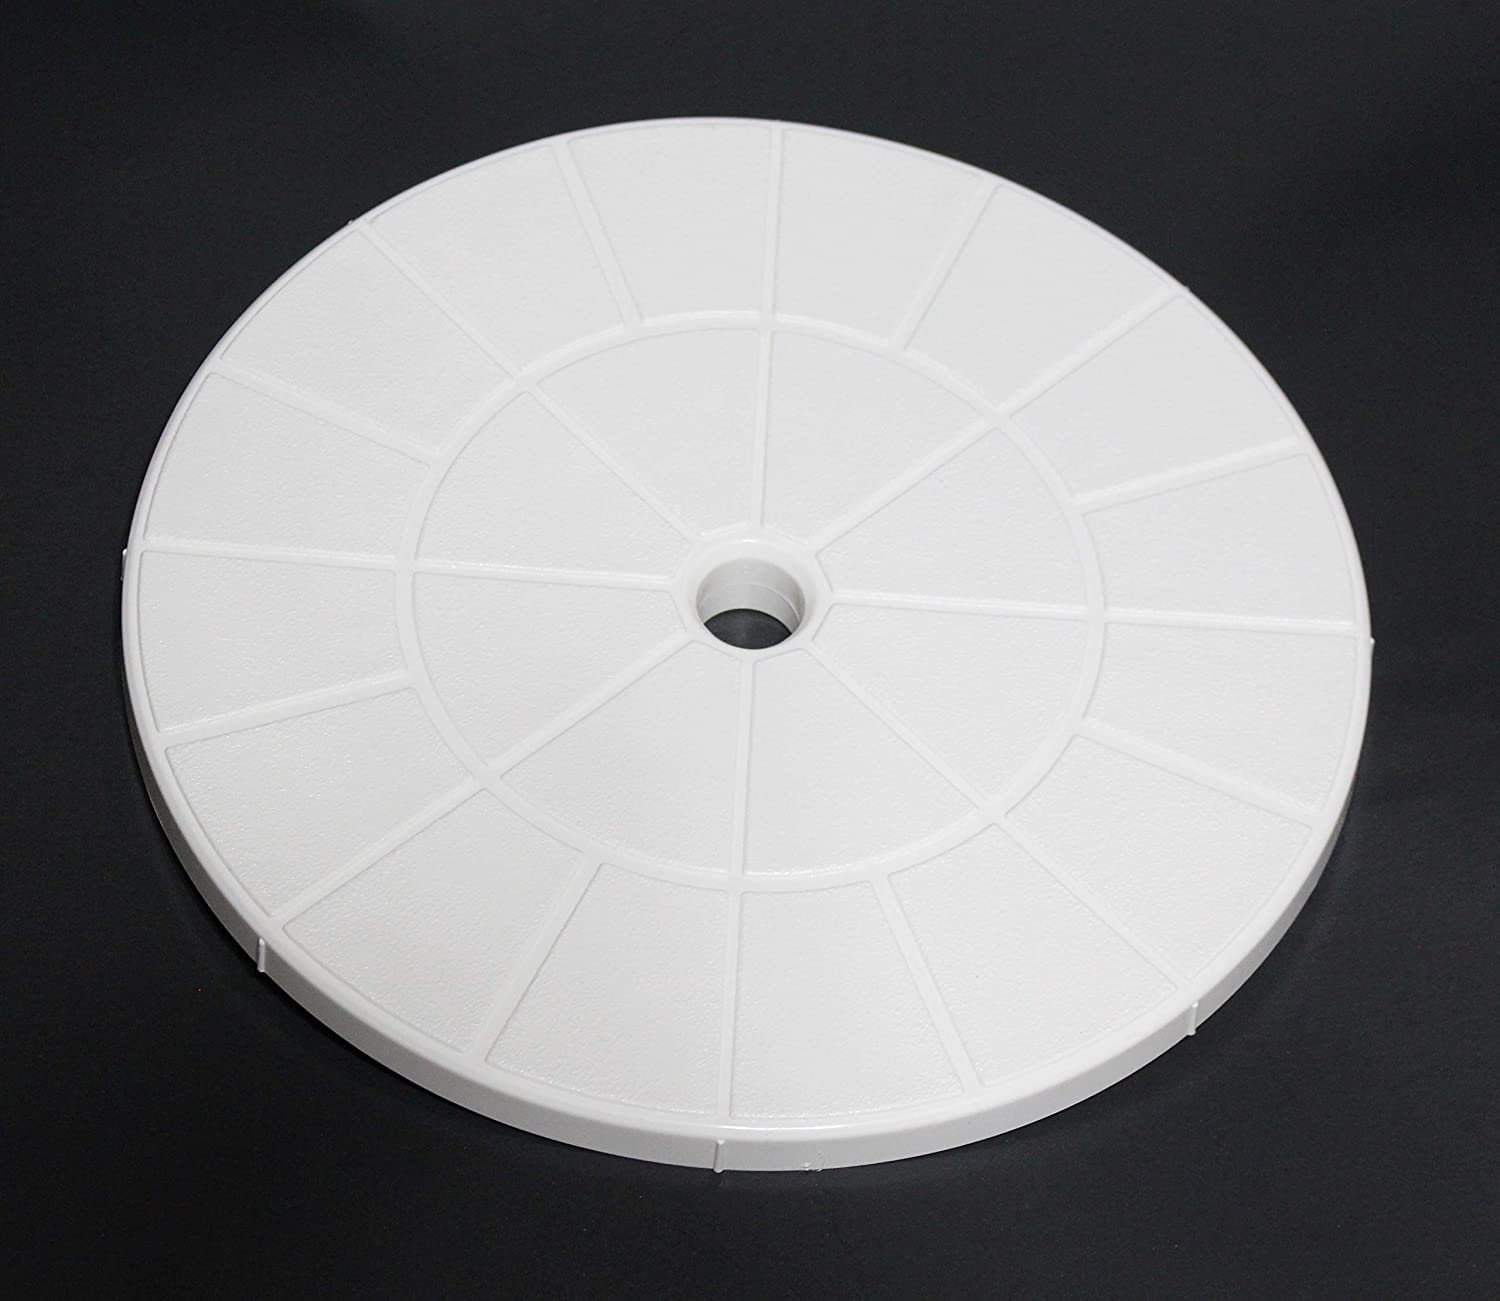 "JSP Manufacturing Swimming Pool Skimmer Cover Debris Canister Deck Lid 9 1/8"" Inch Skimmer Valve Lid White Replacement"